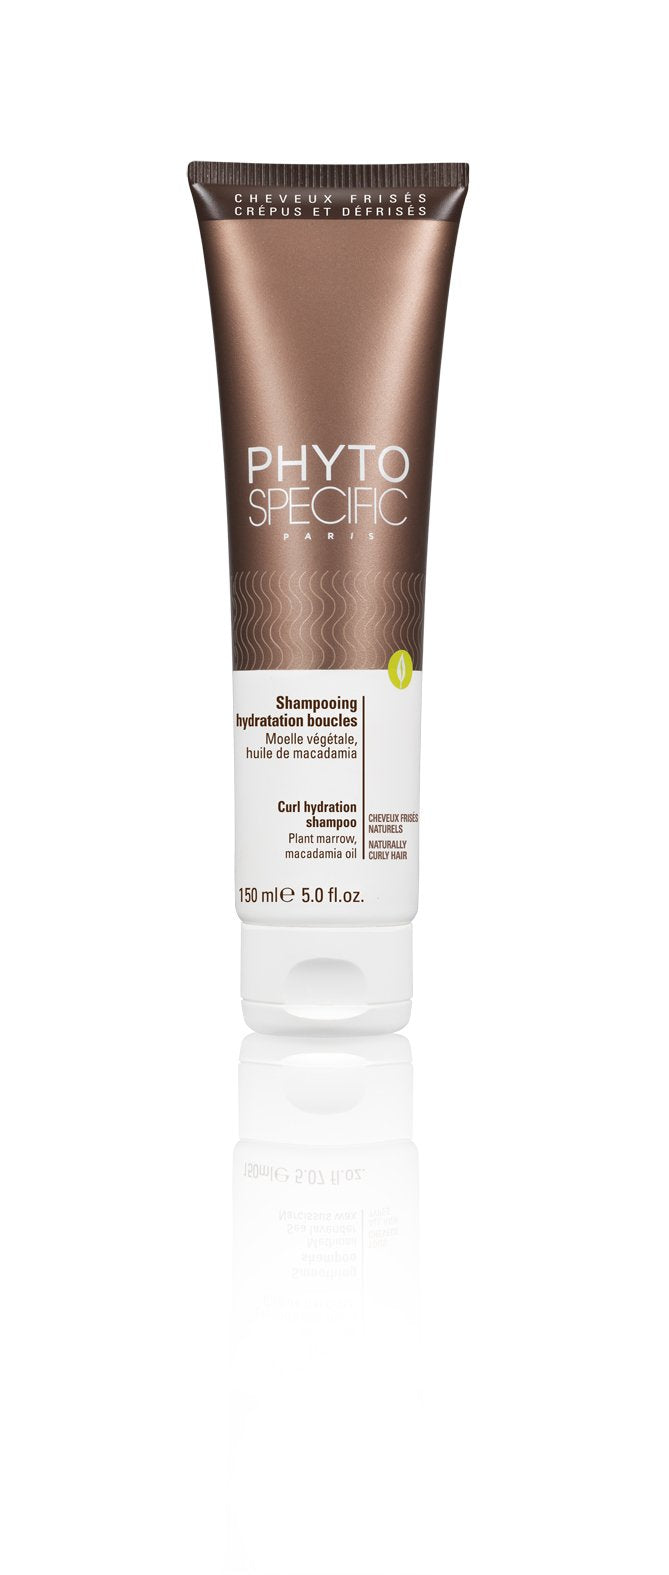 phytospecific-curl-hydration-shampoo-cosmetics-online